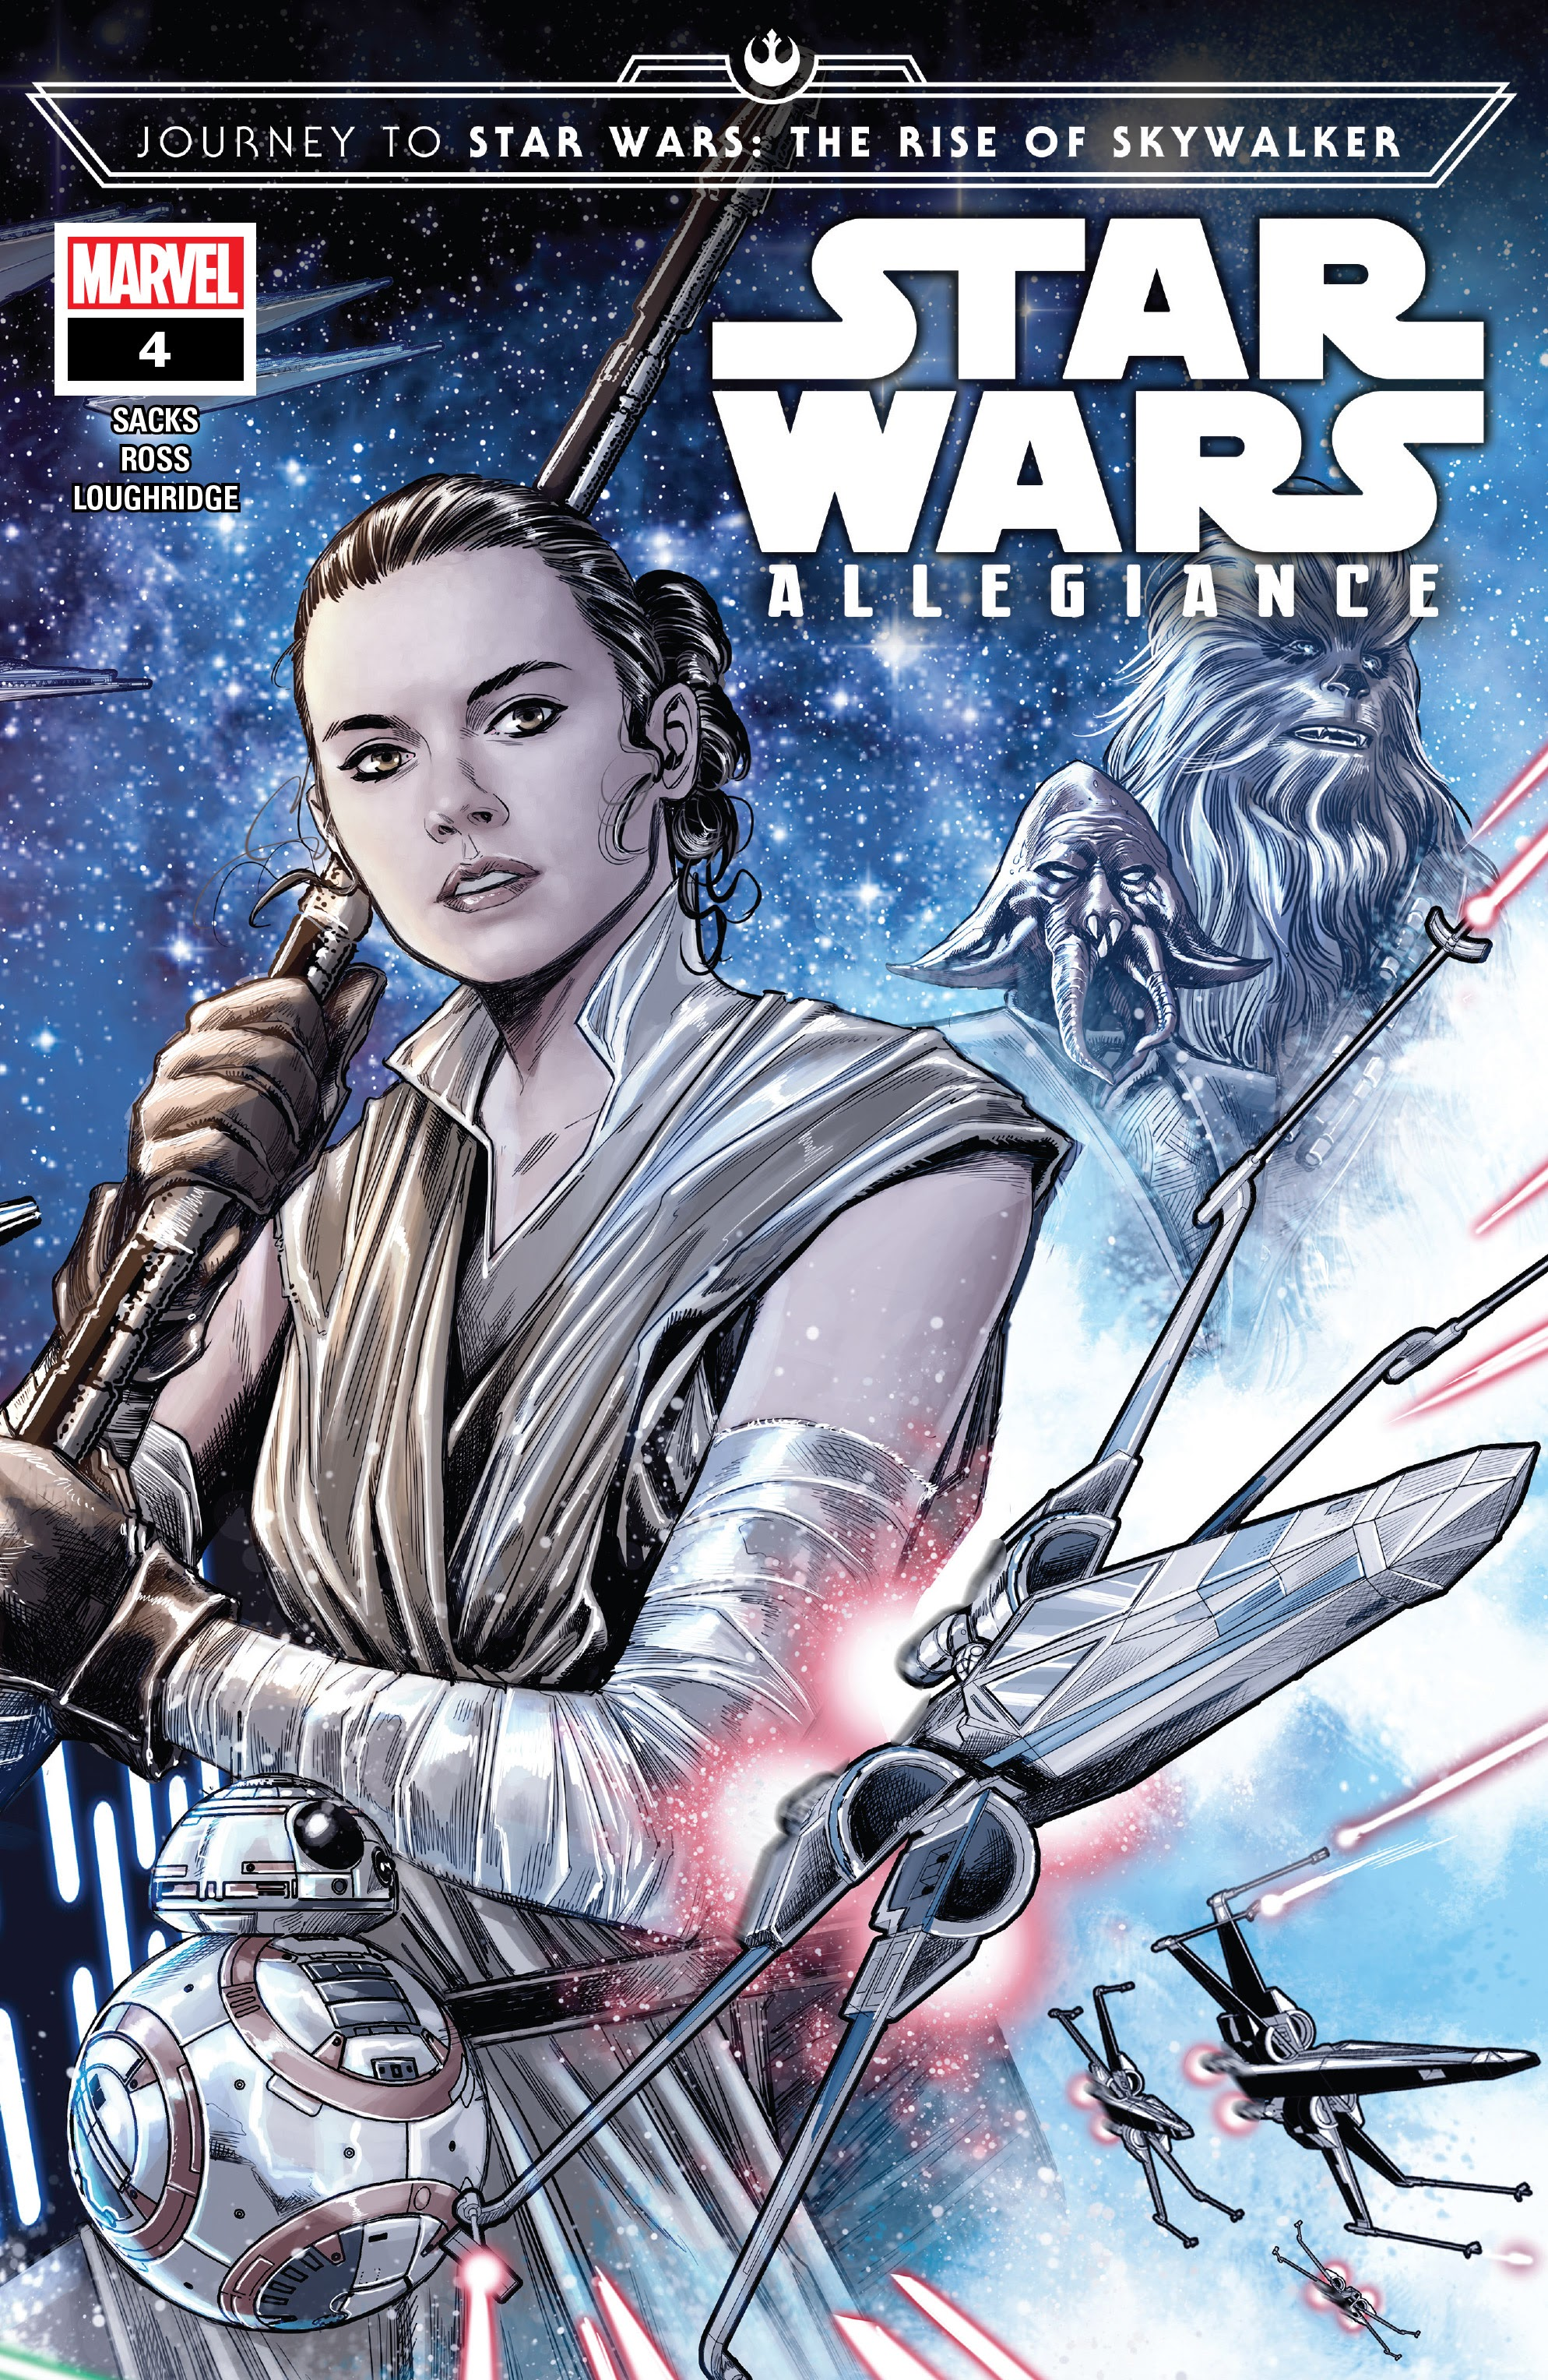 Journey to Star Wars: The Rise Of Skywalker - Allegiance issue 4 - Page 1